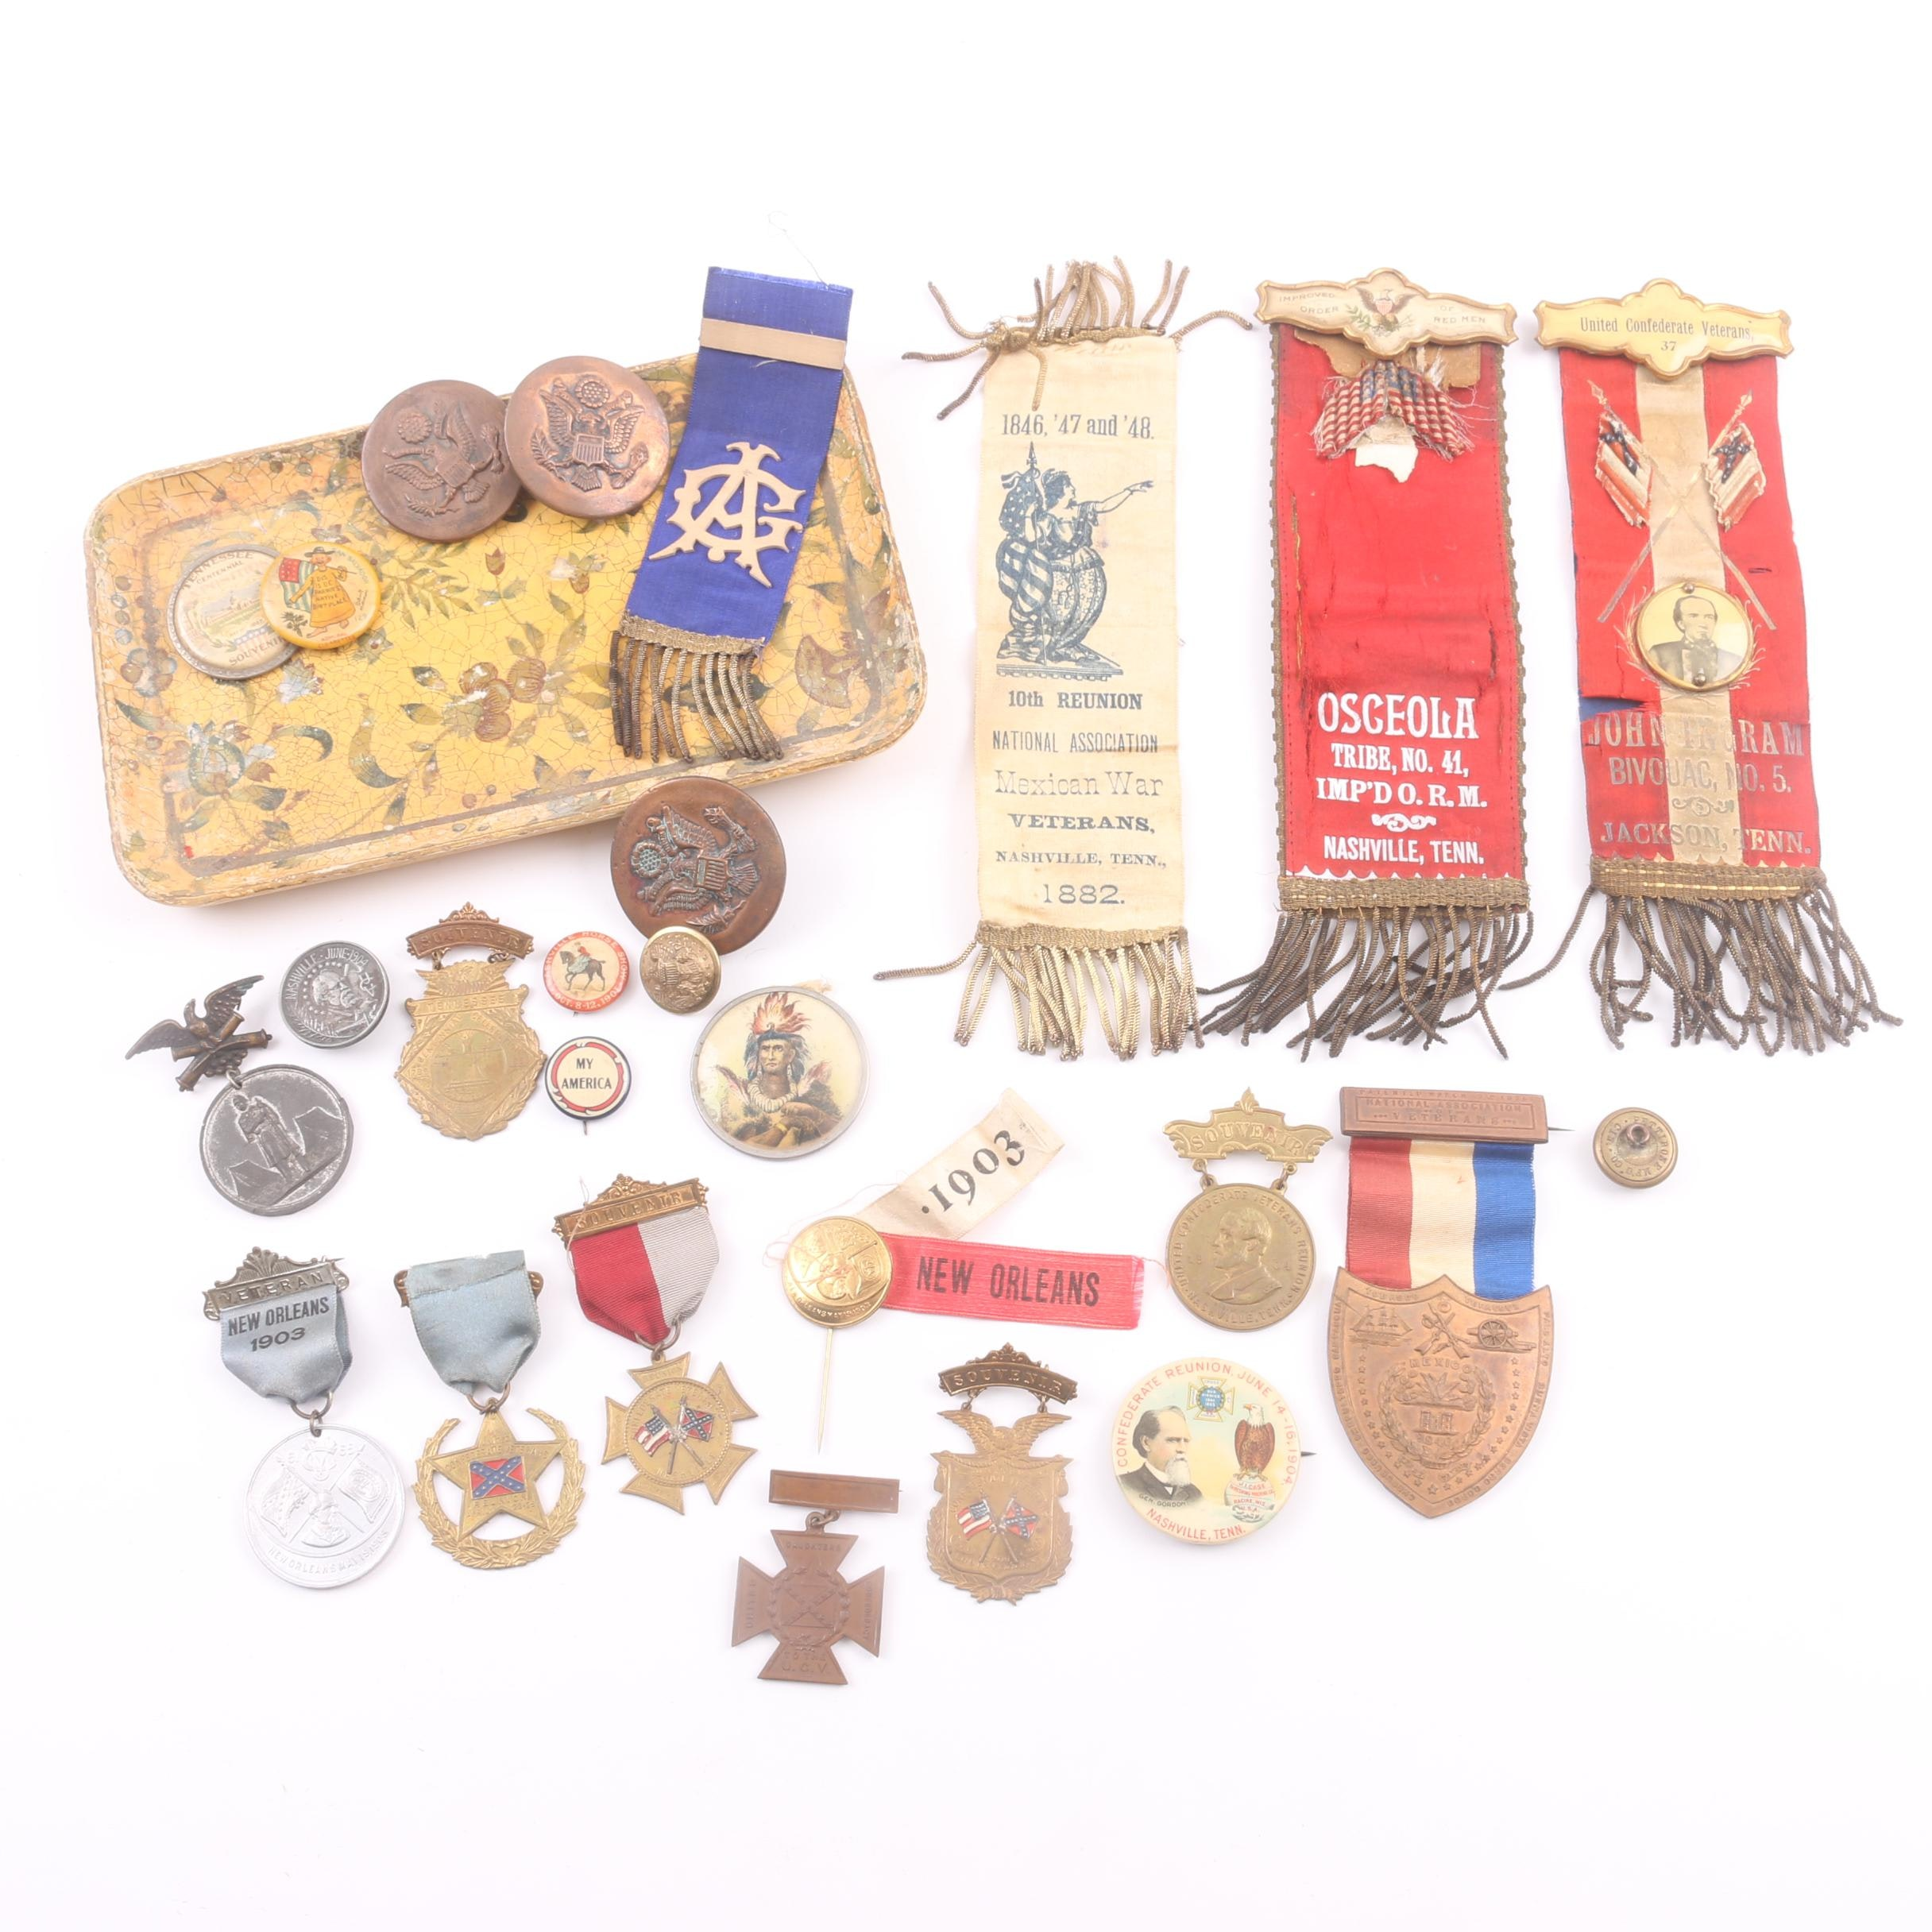 Antique Commemorative Medals, Pins, Badges, Tokens, and More